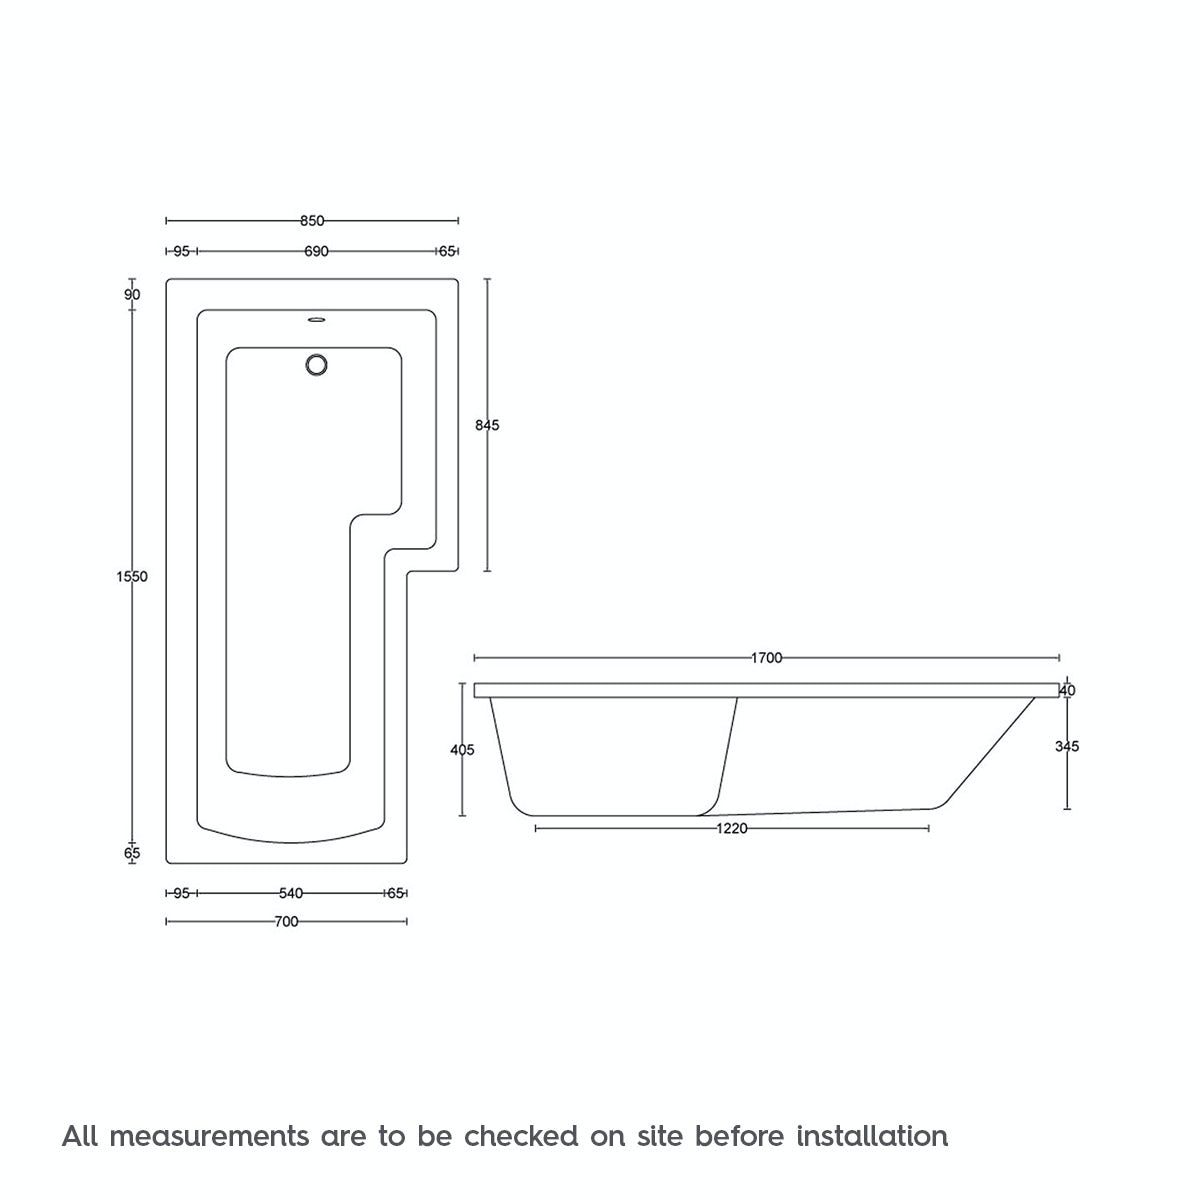 Dimensions for 1700 x 850